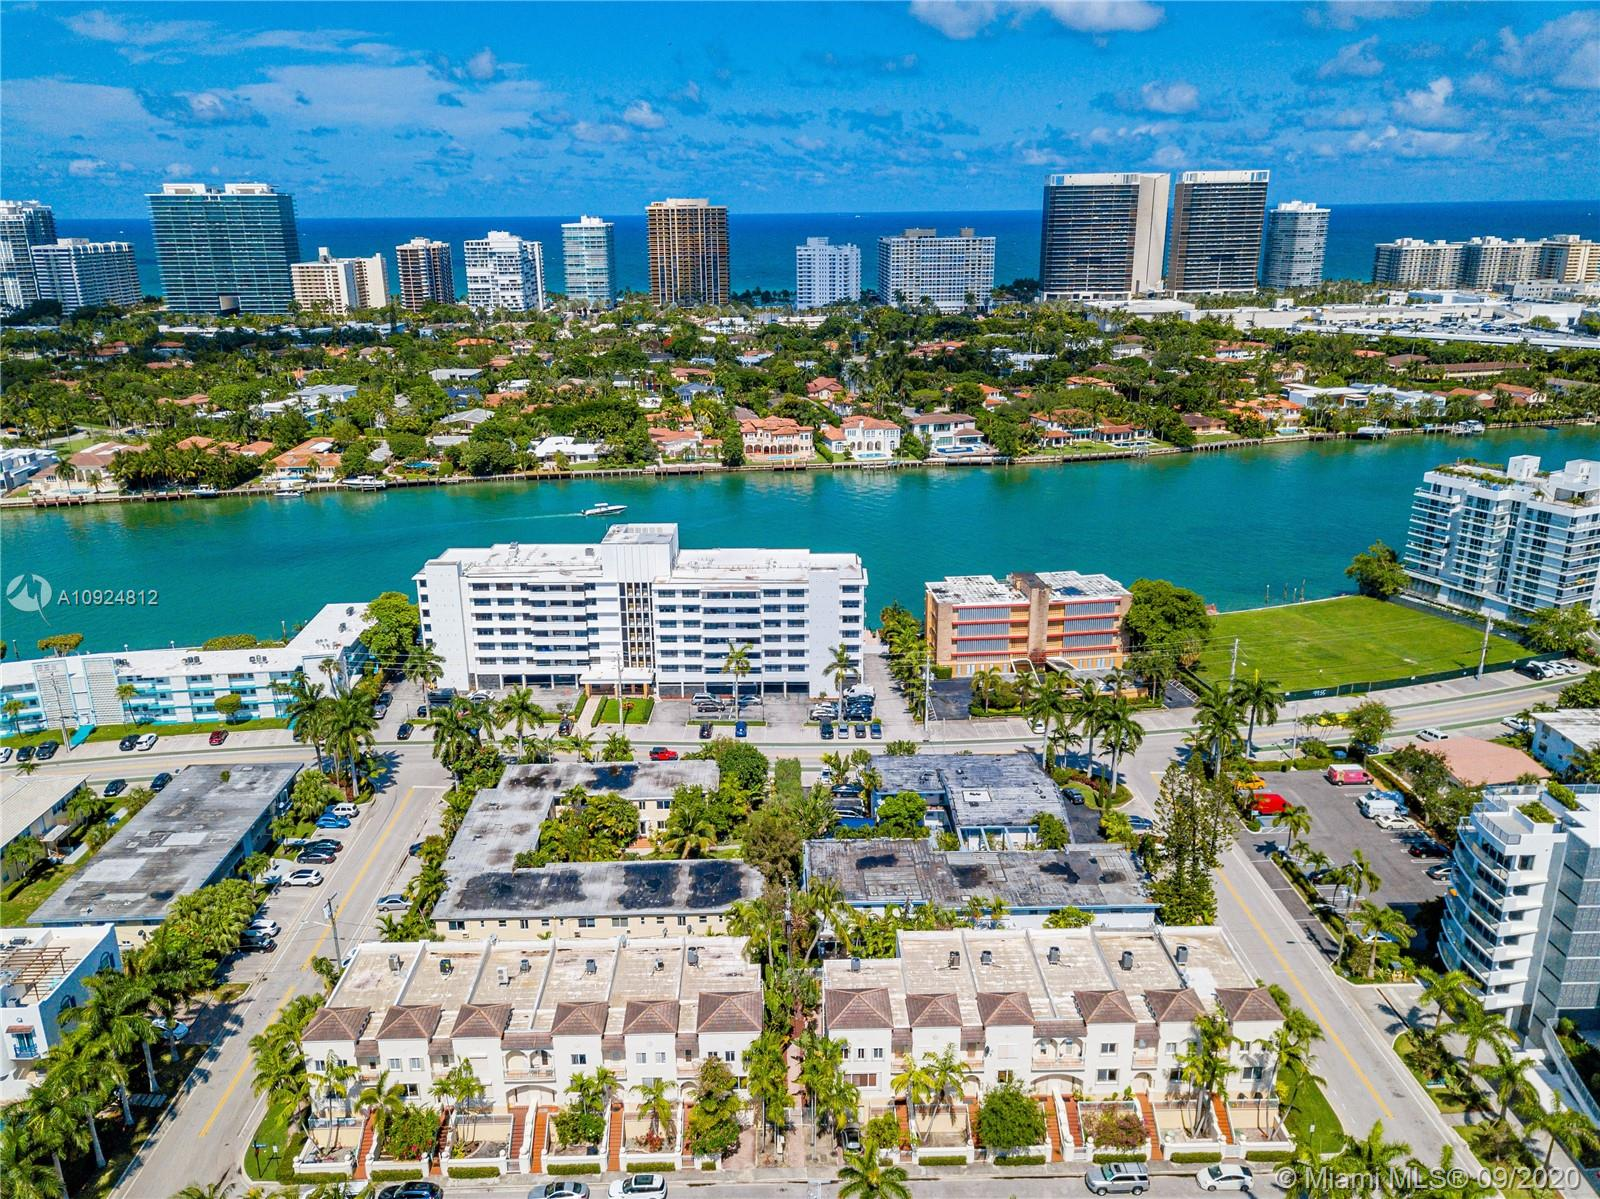 Spectacular and spacious 5 bedrooms 3.5 bathrooms townhouse located in Bay Harbor Islands. Townhouse is 3 floors with 3 bedrooms upstairs, living area on second floor and 2 bedrooms on first floor. Large living area , 2 car garage, community pool. Master bedroom with large walk-in closets and dual sink bathroom with bidet. Entire second floor consists of kitchen and living room. New water heater and 2 AC units , 4 years old, new roof. Maintenance fees includes : water, sewer,trash, exterior maintenance, roof. Minutes to Bal Harbour Shop's, Fine Restaurants , famous Ruth K Broad Bay Harbor K- 8 school, places of worship and the Beaches,children parks and dog parks.